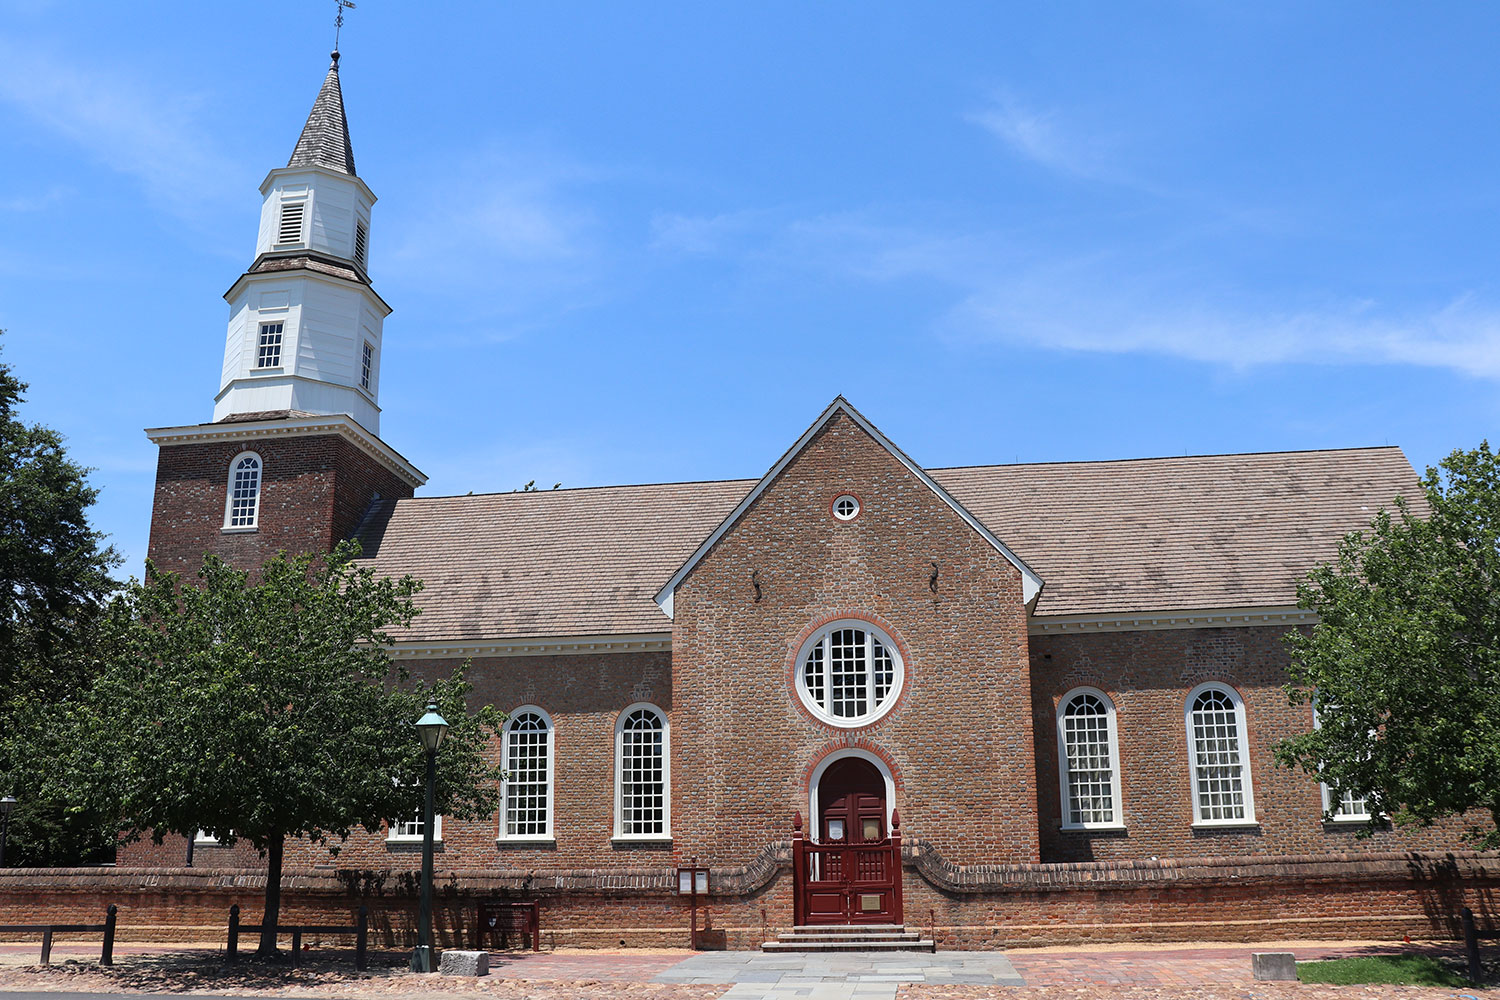 Burton Parish Church, Williamsburg, Virginia